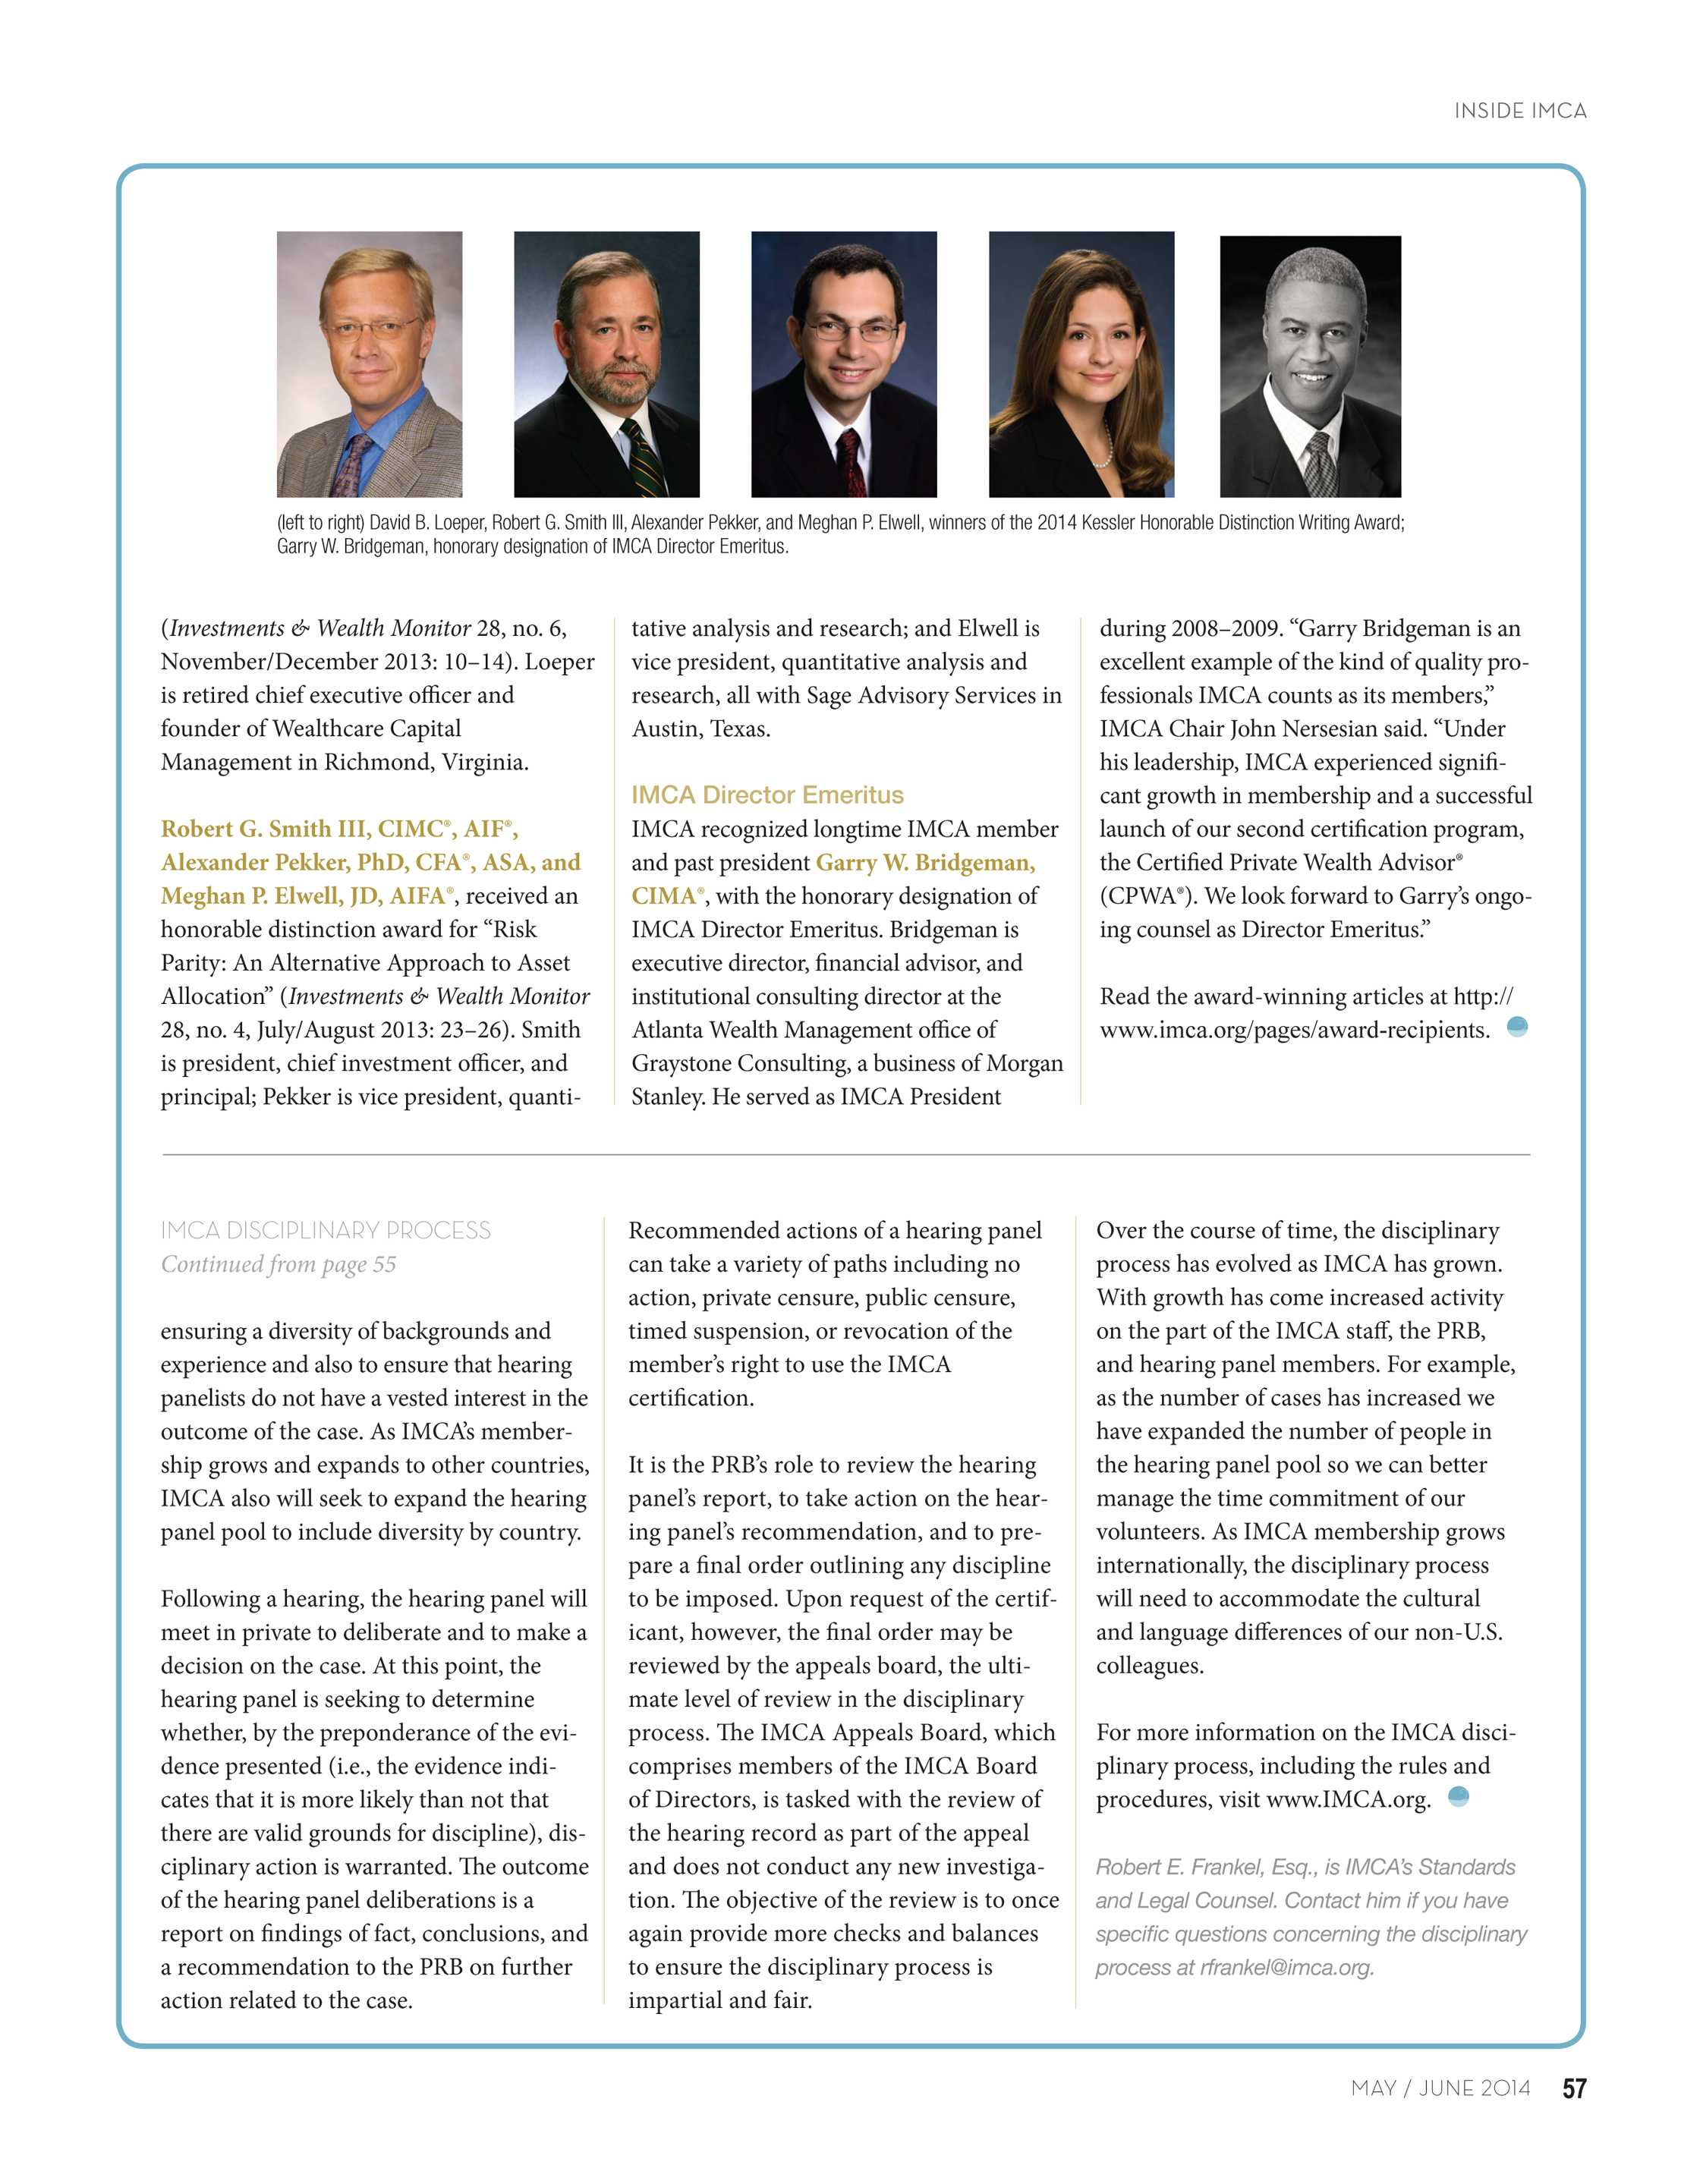 Investments & Wealth Monitor - May/June 2014 - page 56